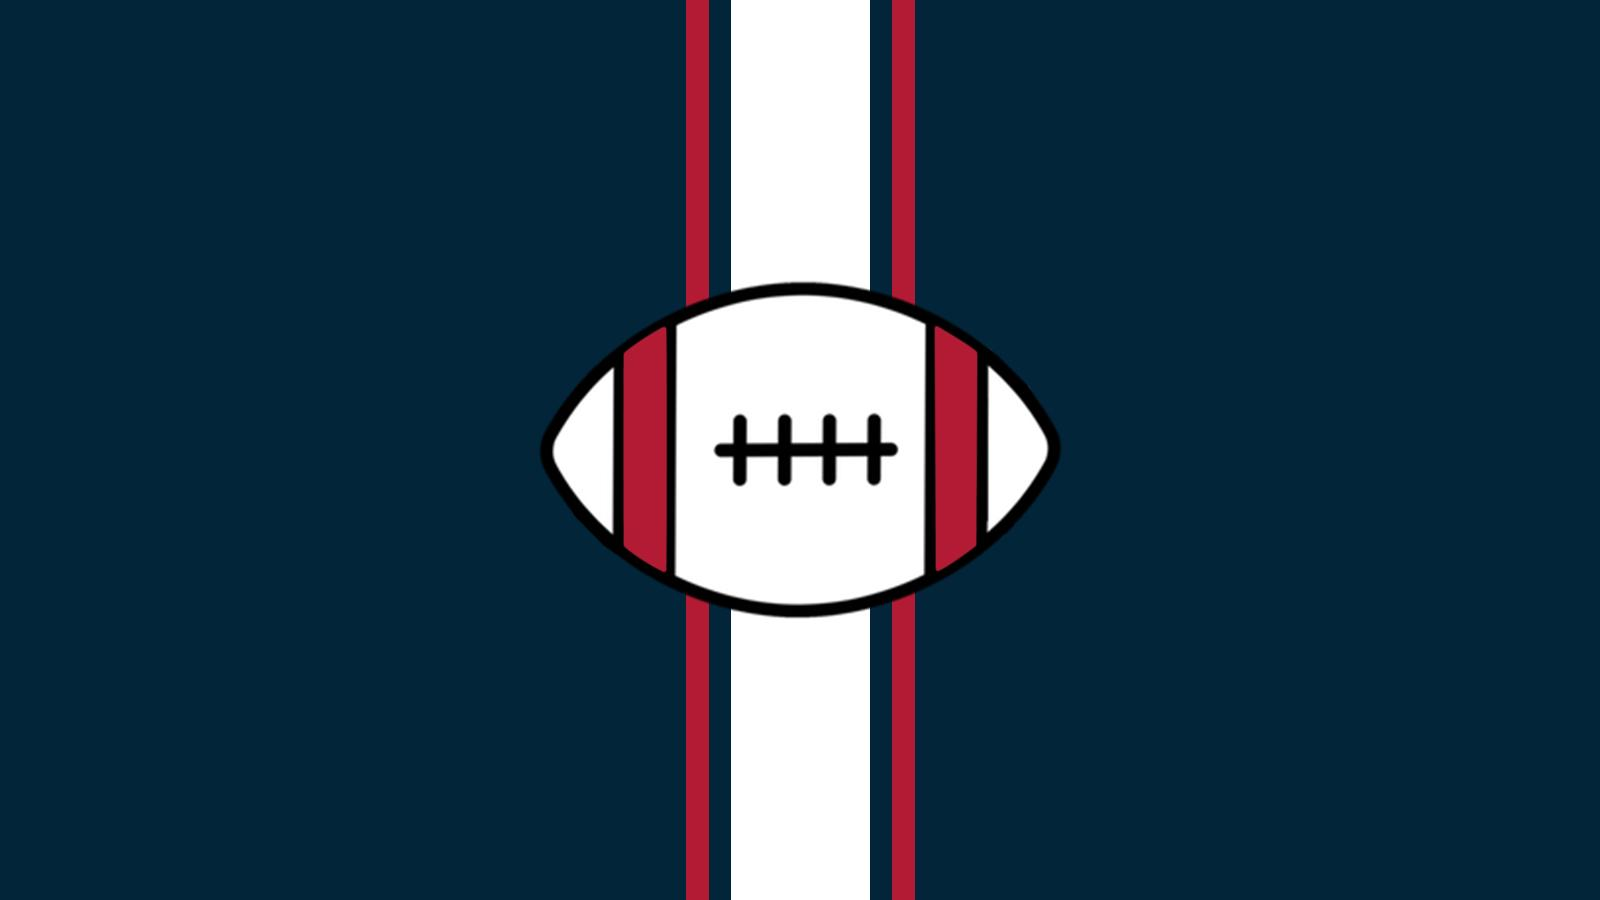 AFC Championship Game - TBD at Houston Texans (Date TBD) (If Necessary)